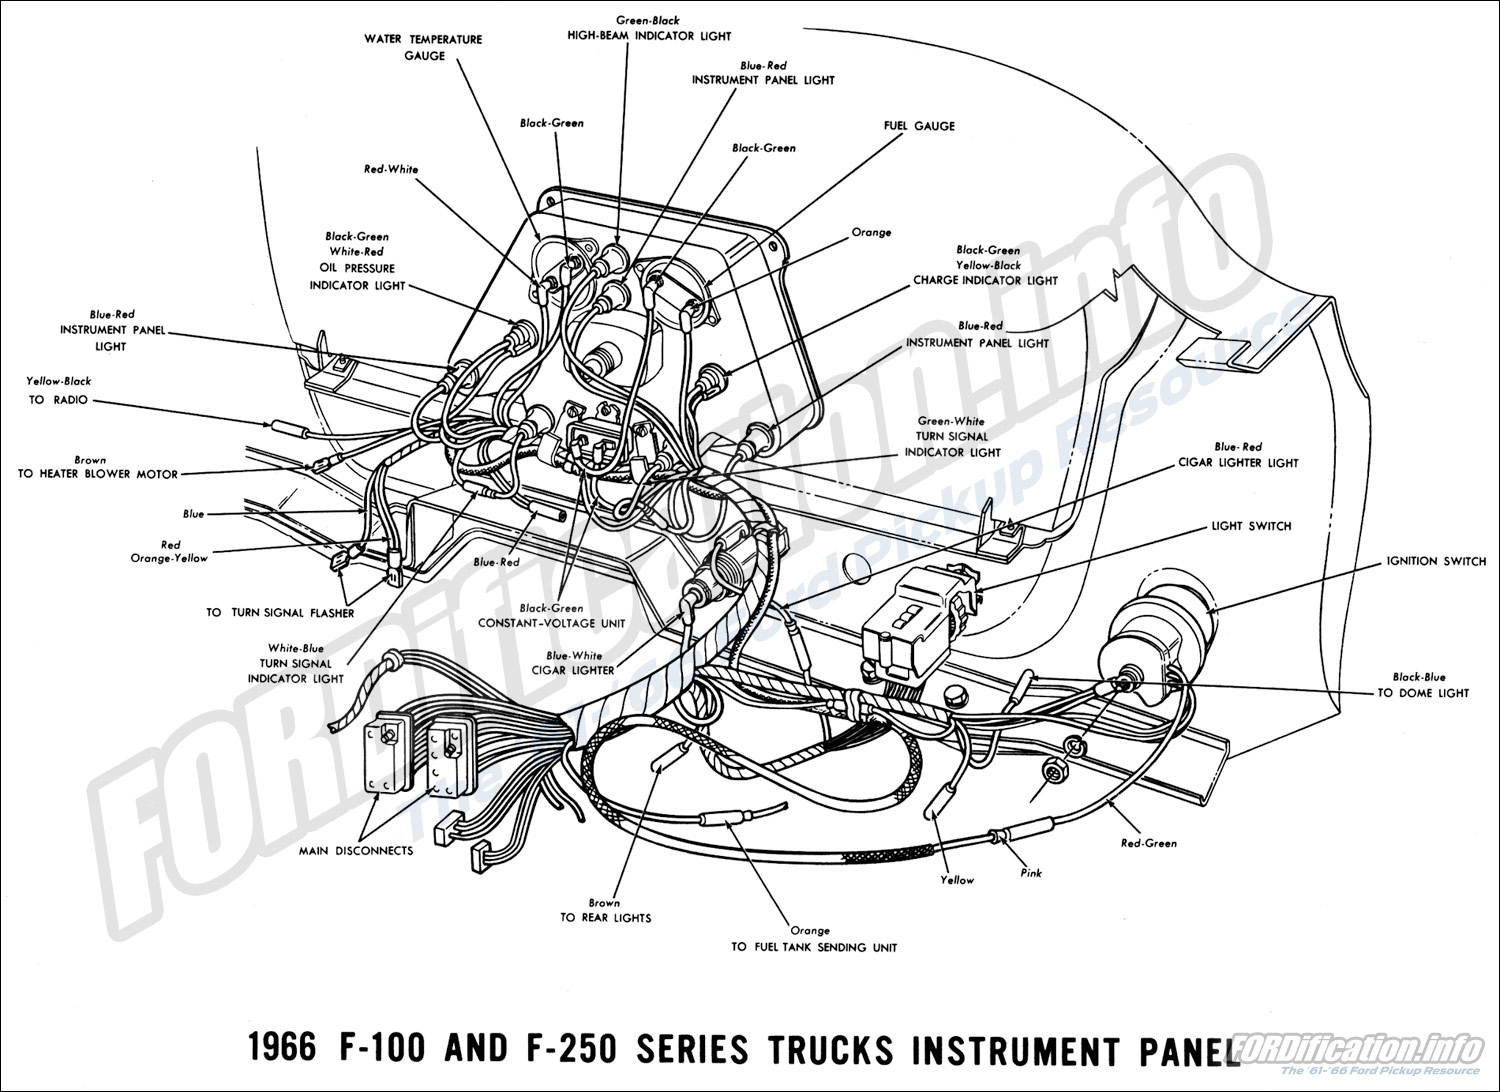 1969 F100 Wiring Harness Ford Horn Diagram Smart Diagrams 1966 Pick Up Diy U2022 Rh Dancesalsa Co 66